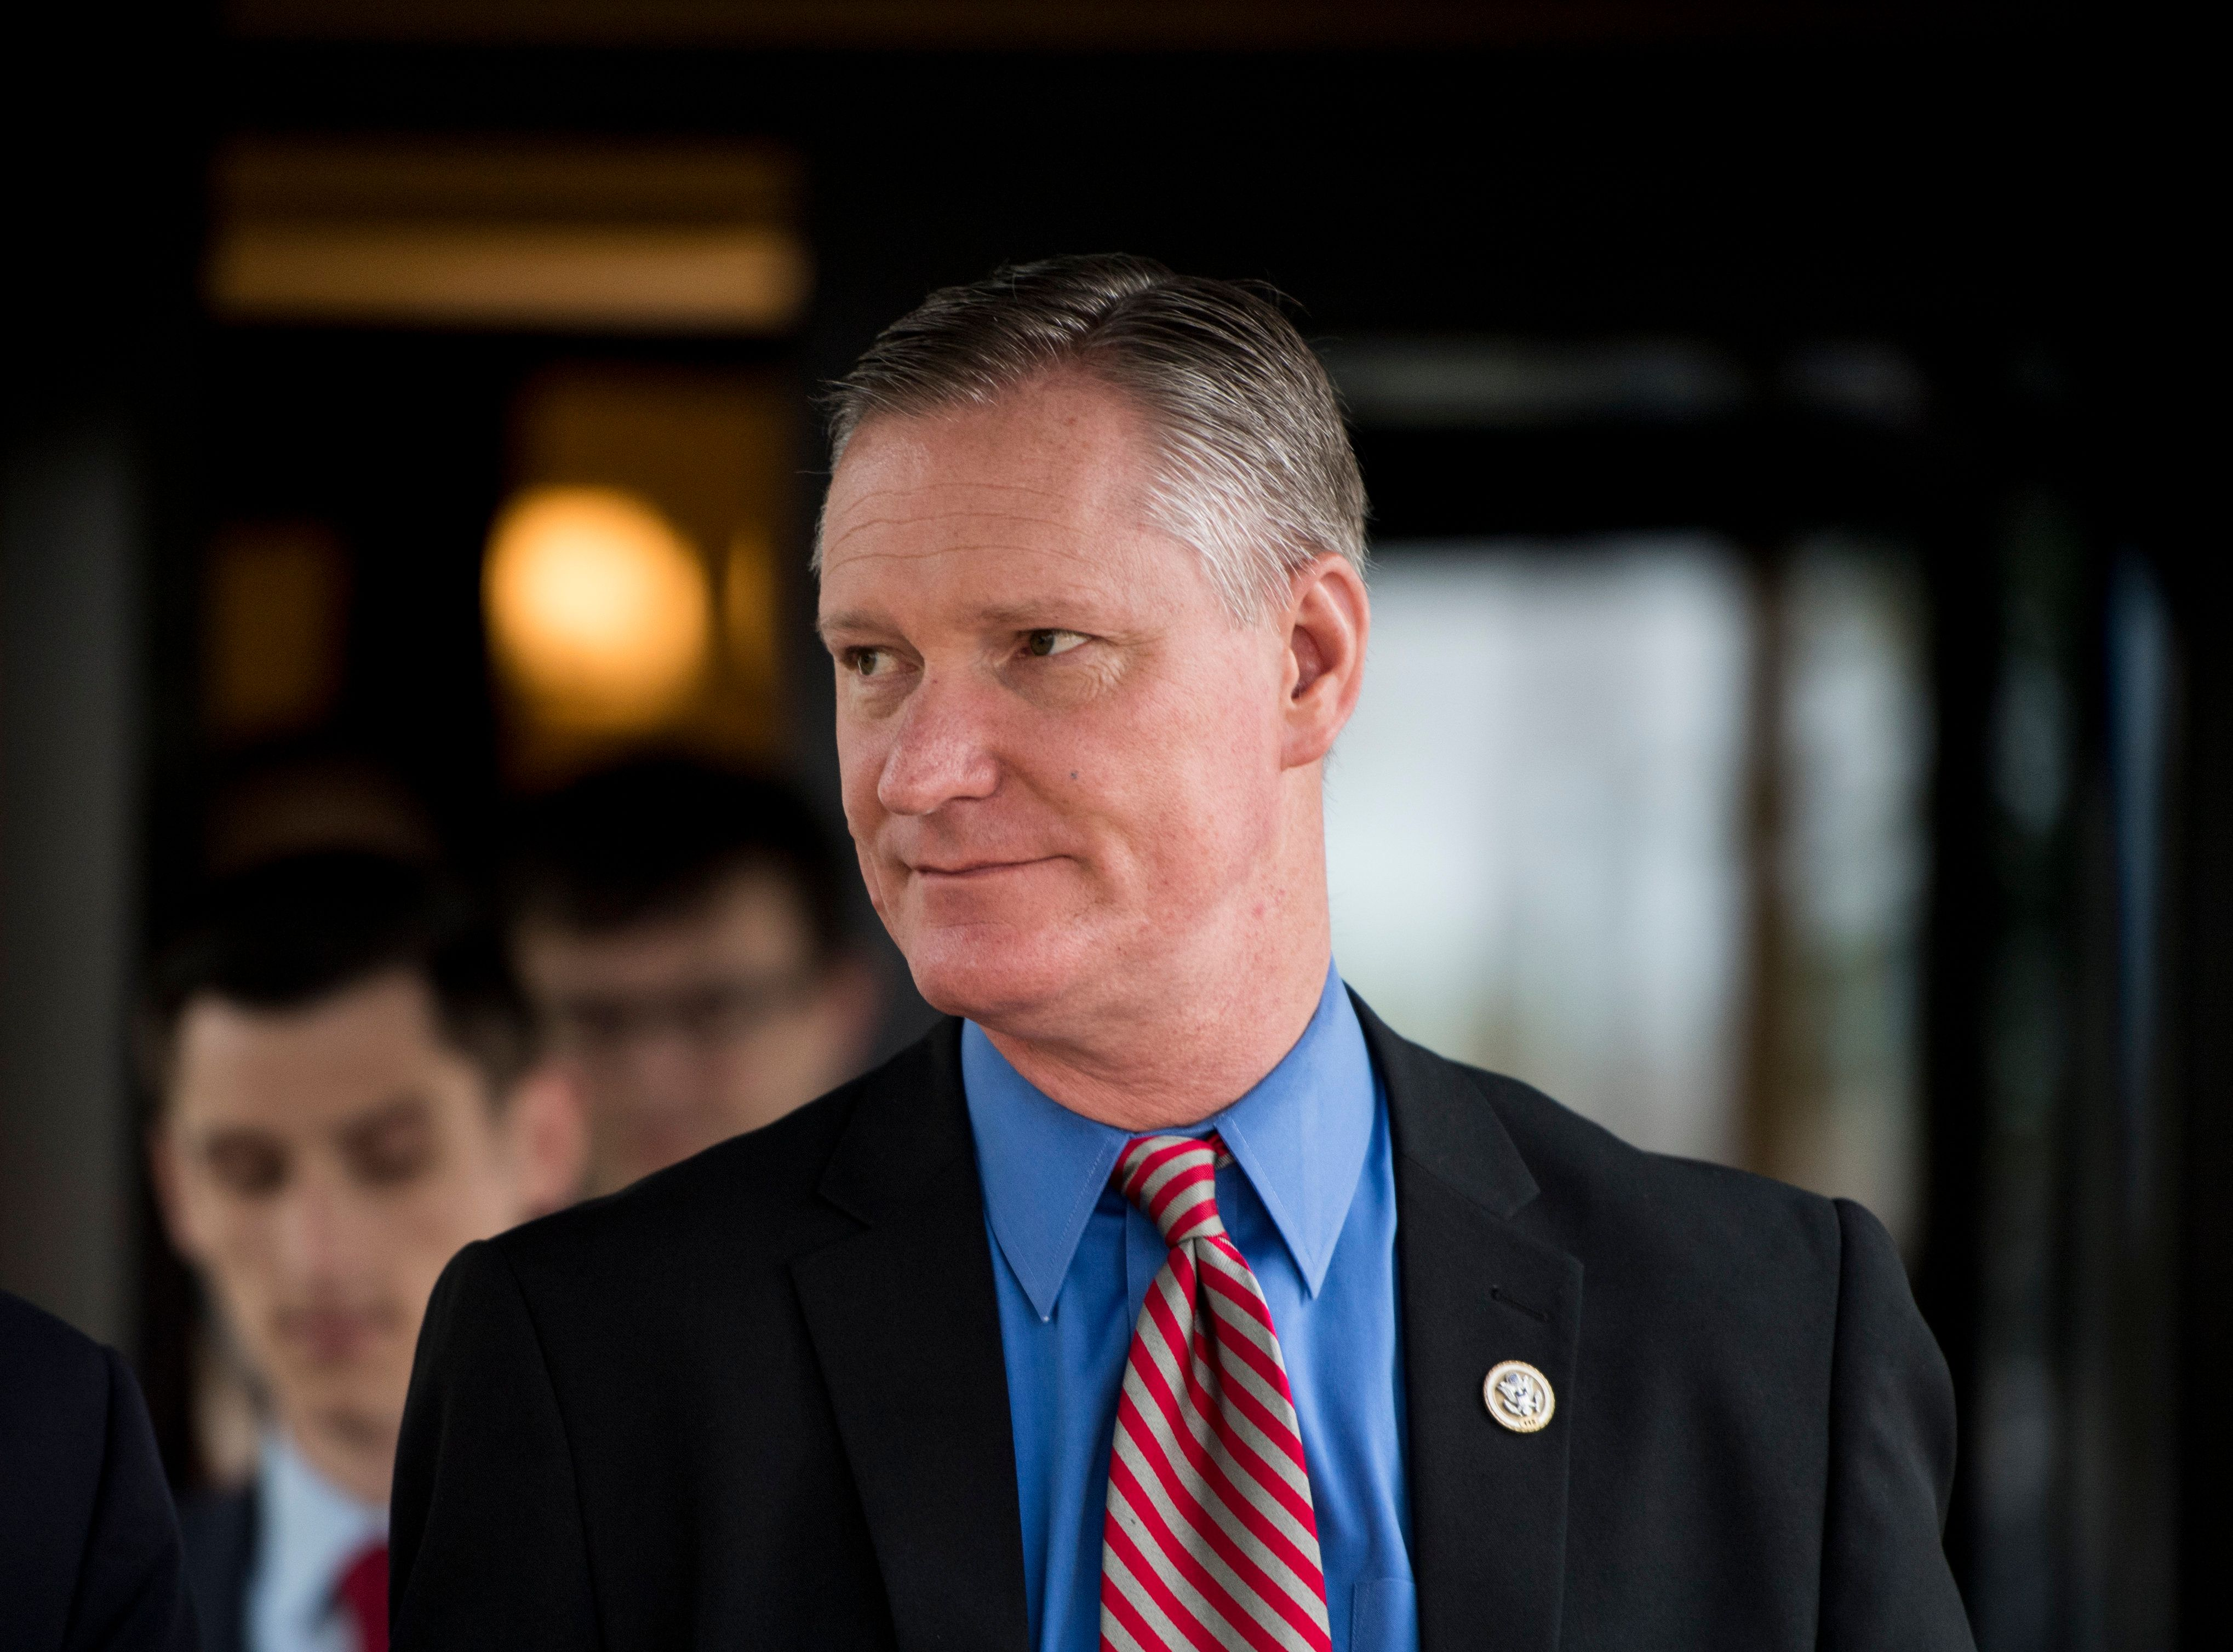 UNITED STATES - MAY 16: Rep. Steve Stivers, R-Ohio, leaves the House Republican Conference meeting at the Capitol Hill Club on Wednesday, May 16, 2018. (Photo By Bill Clark/CQ Roll Call)